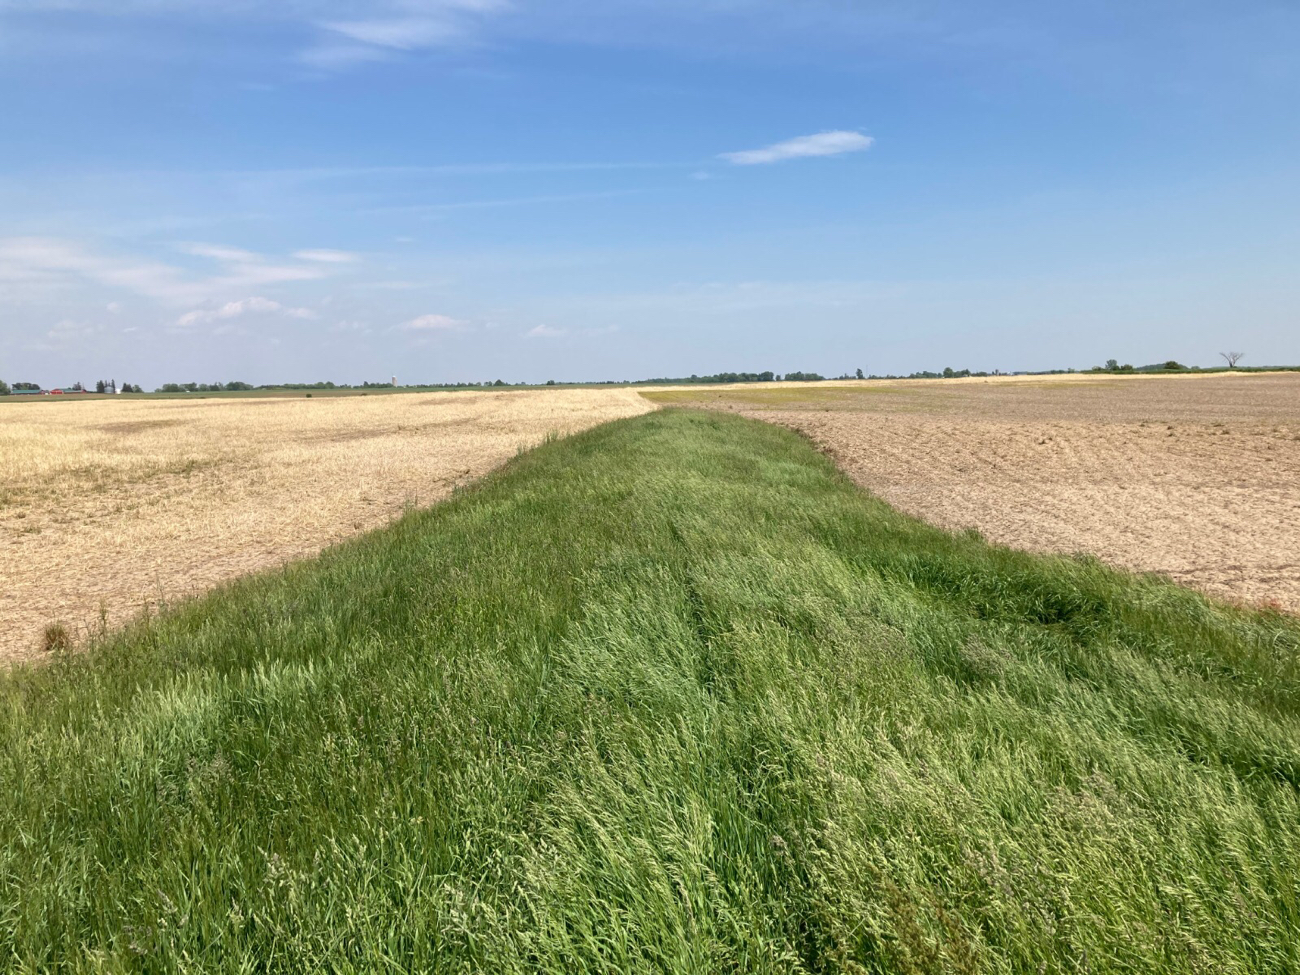 Cover Crop vs No Cover Crop (cereal rye)